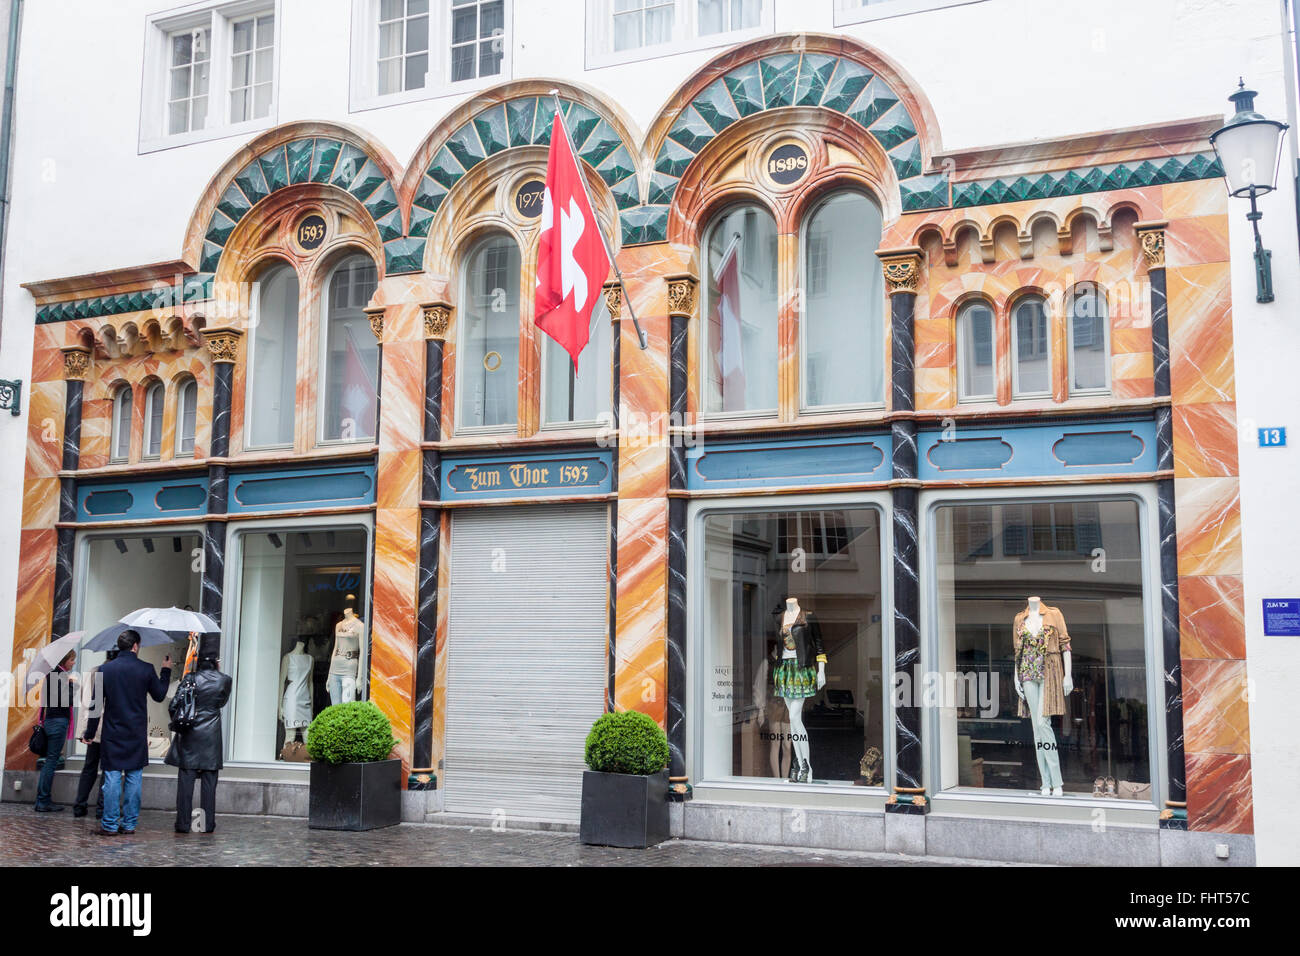 Historical Buildings Zurich Switzerland - Stock Image